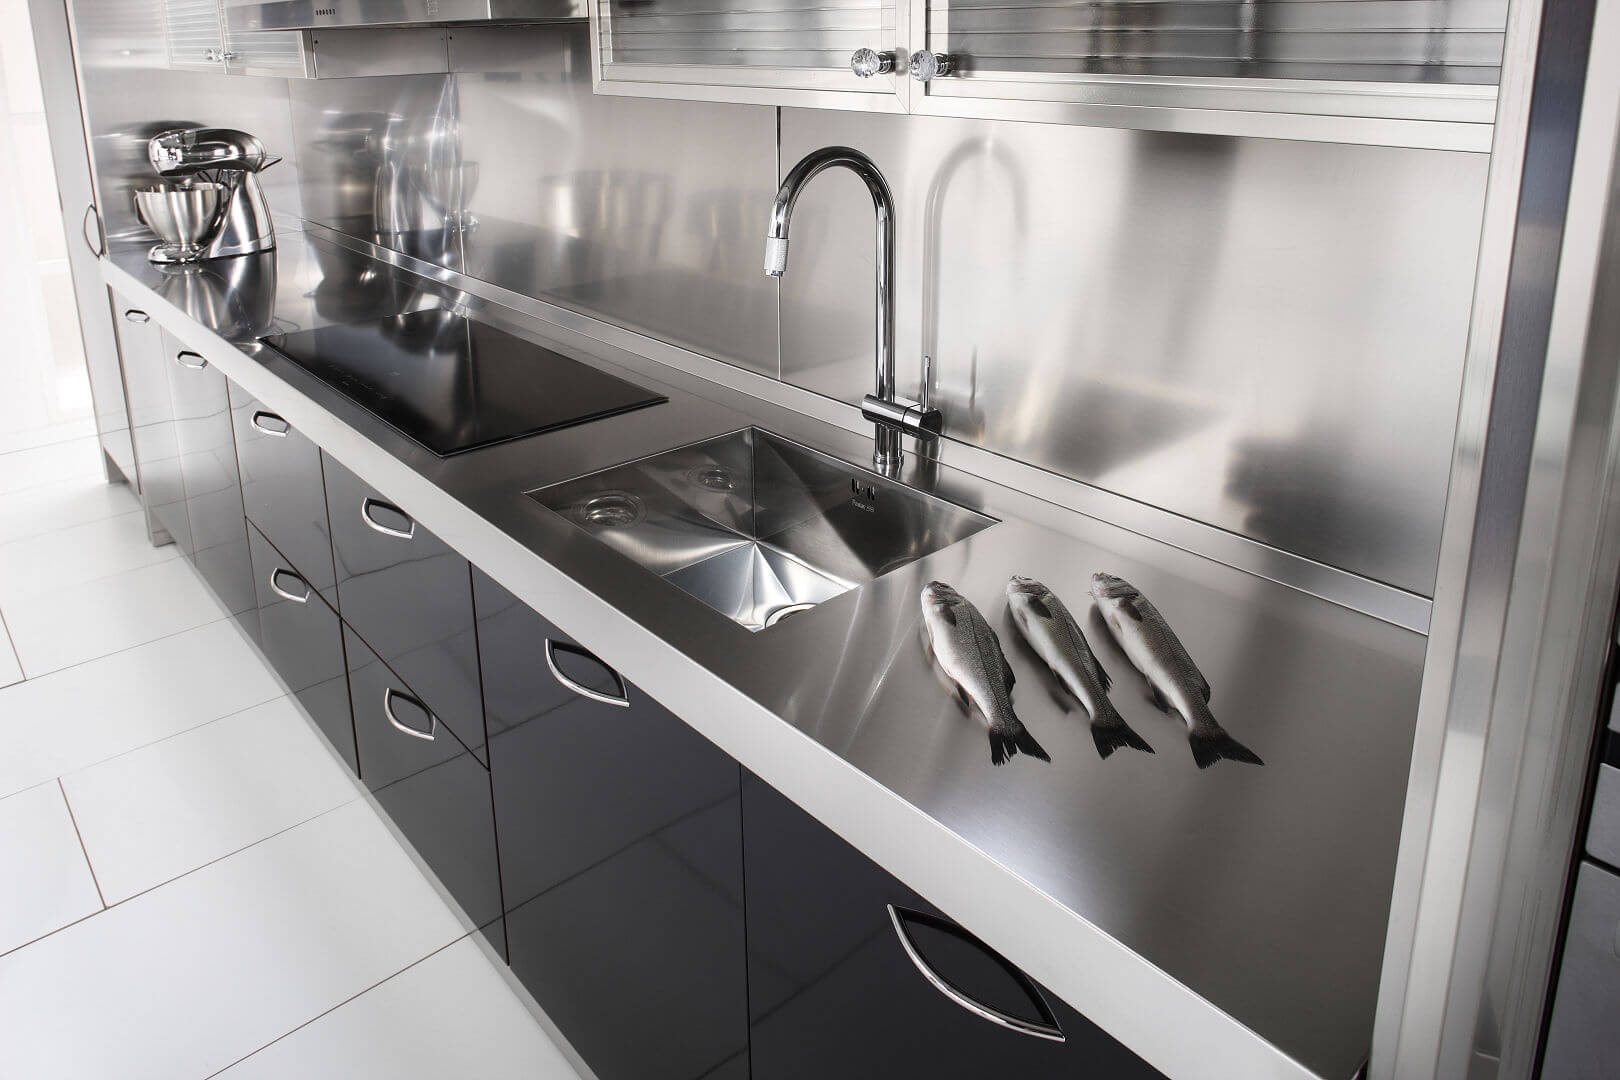 Arca Cucine Italy - Domestic stainless steel kitchens - 15 - Essex - Top Cooking Washing